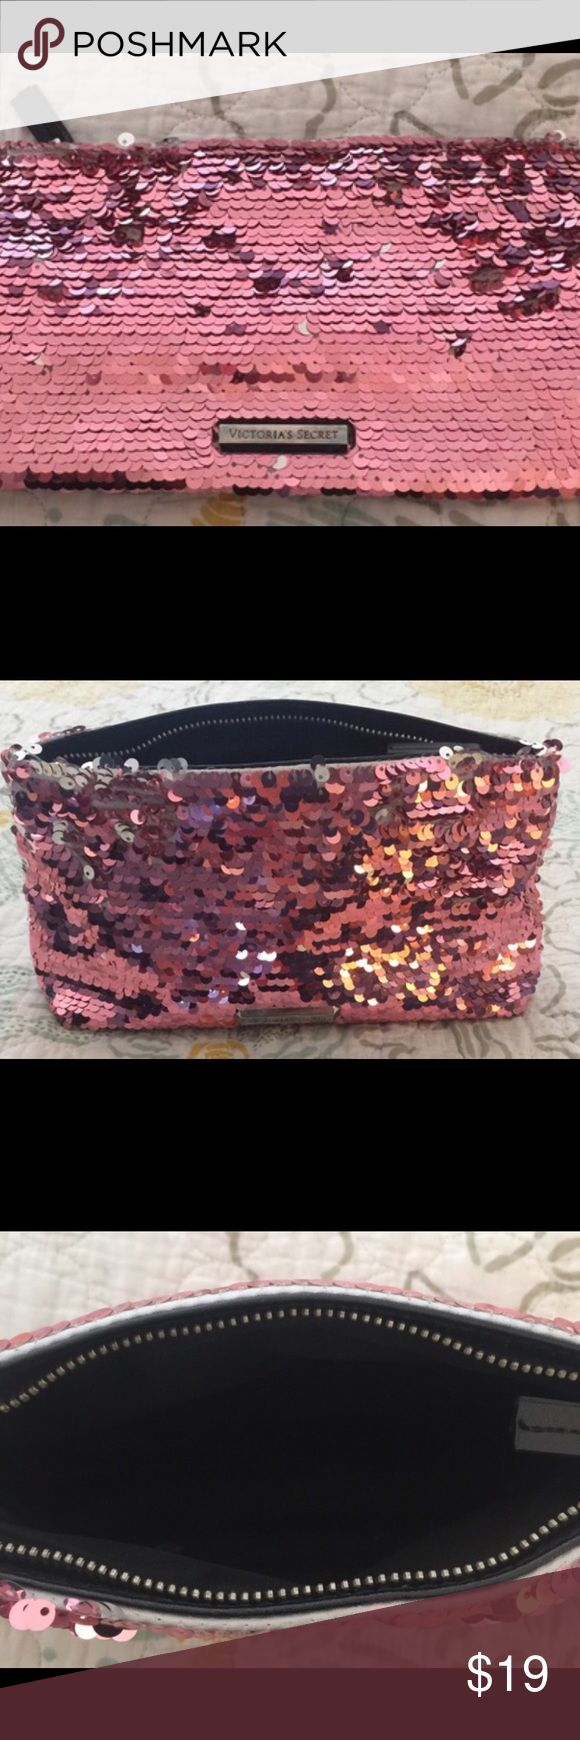 Victoria secret make up bag Pink sequence Victoria secret make up bag in excellent condition! Victoria's Secret Bags